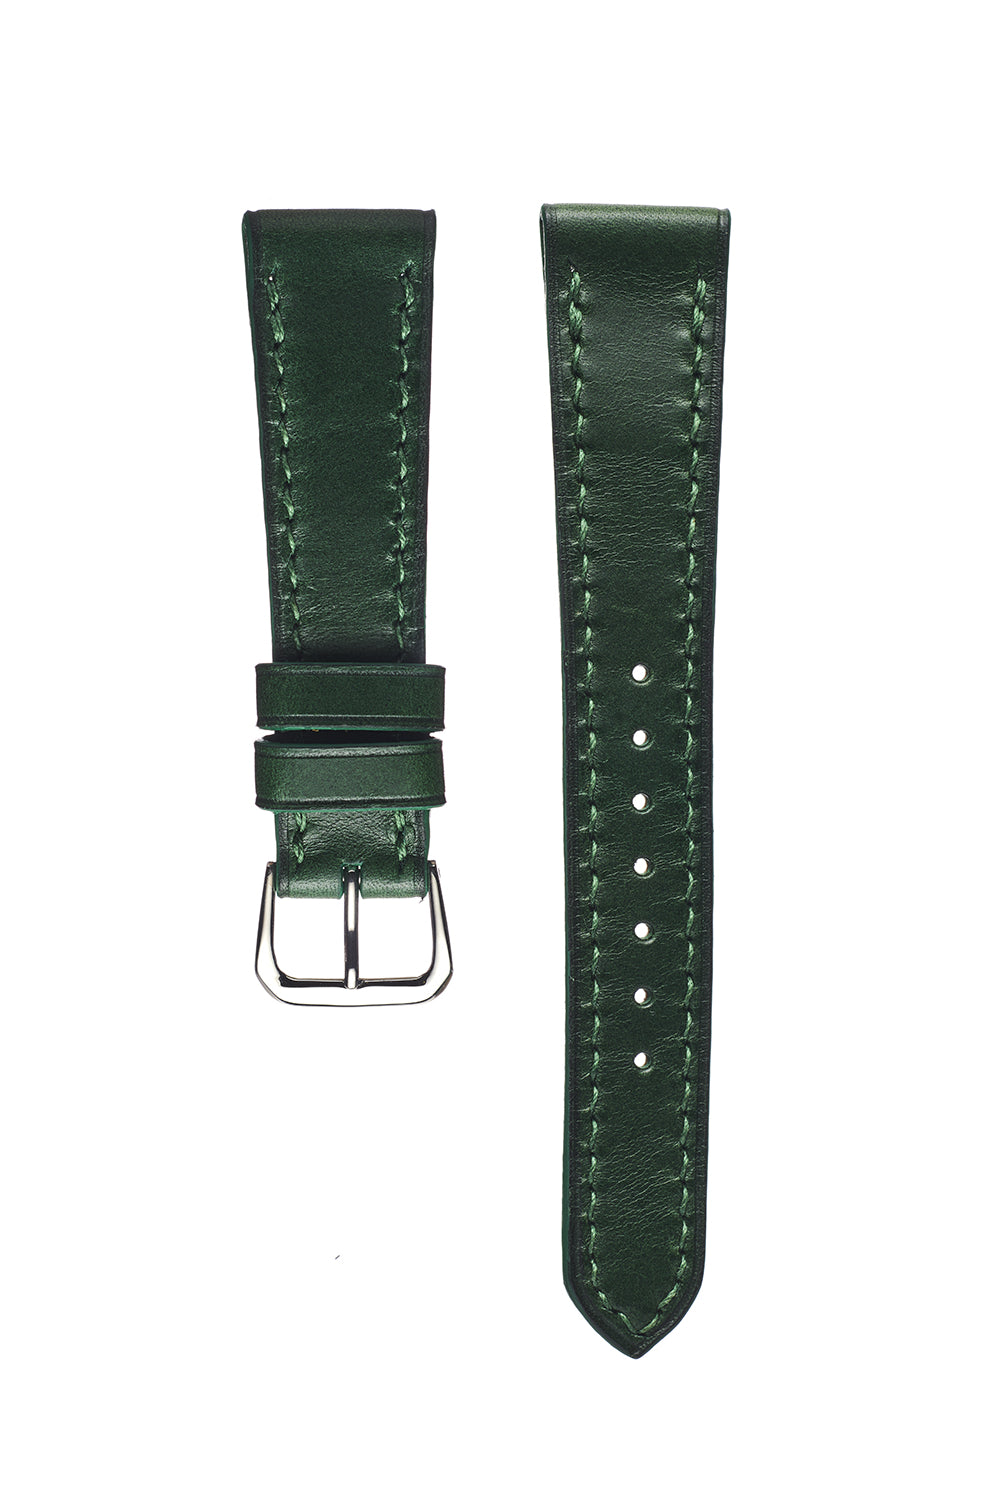 Racing Green Buttero Calfskin Watch Strap - David Lane Design